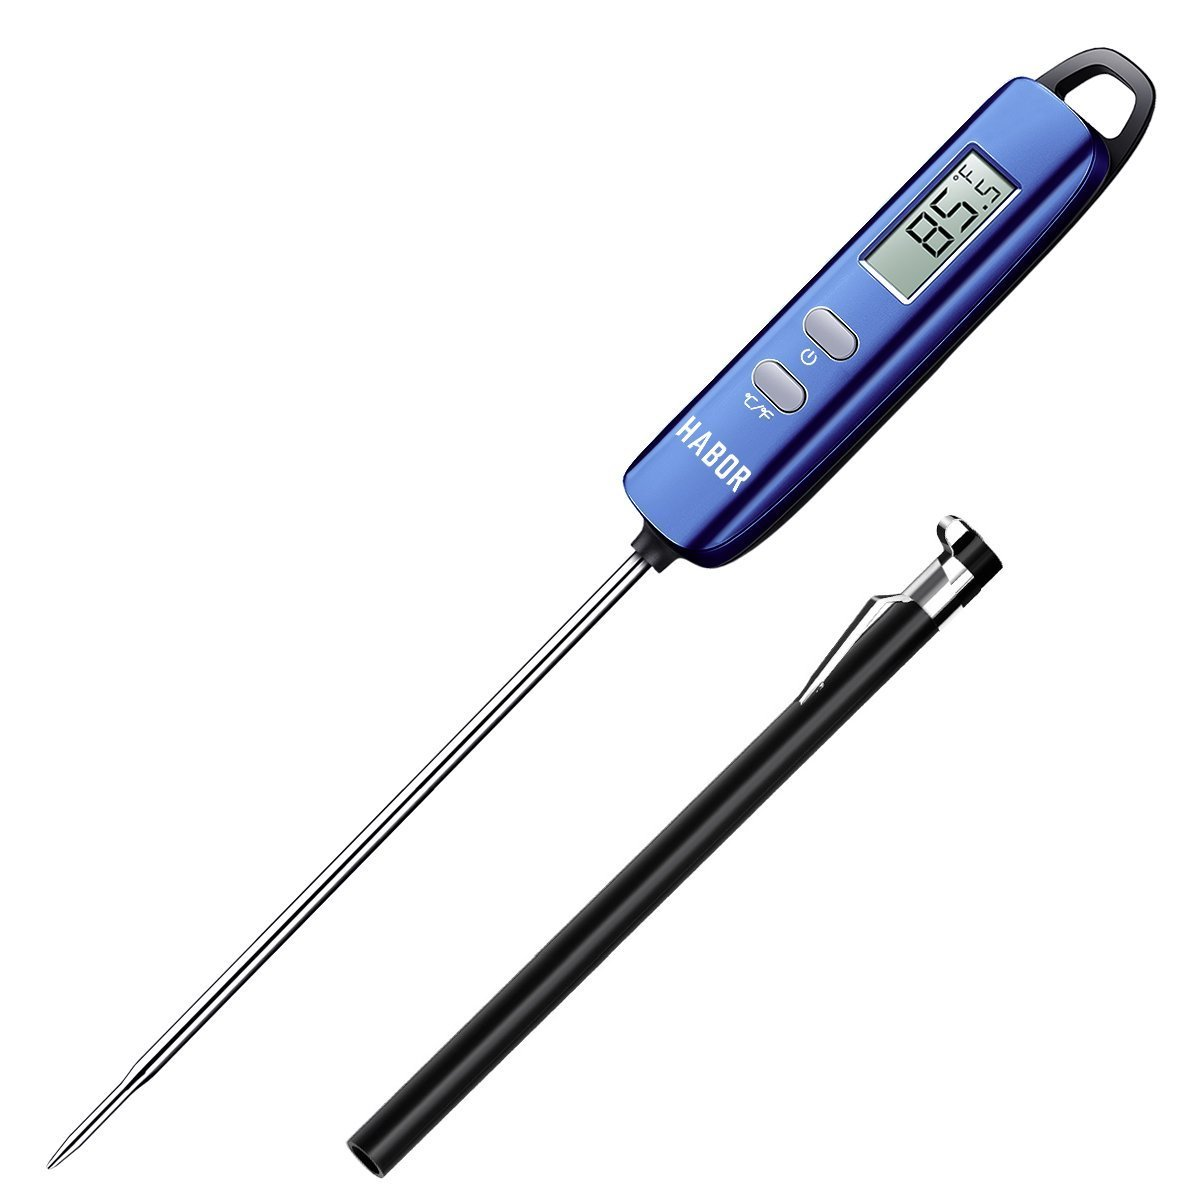 Meat Thermometer, Habor Instant Read Thermometer Cooking Thermometer Candy Thermometer with Long Probe for Kitchen Cooking BBQ Grill Smoker Meat Fry Food Milk Yogurt